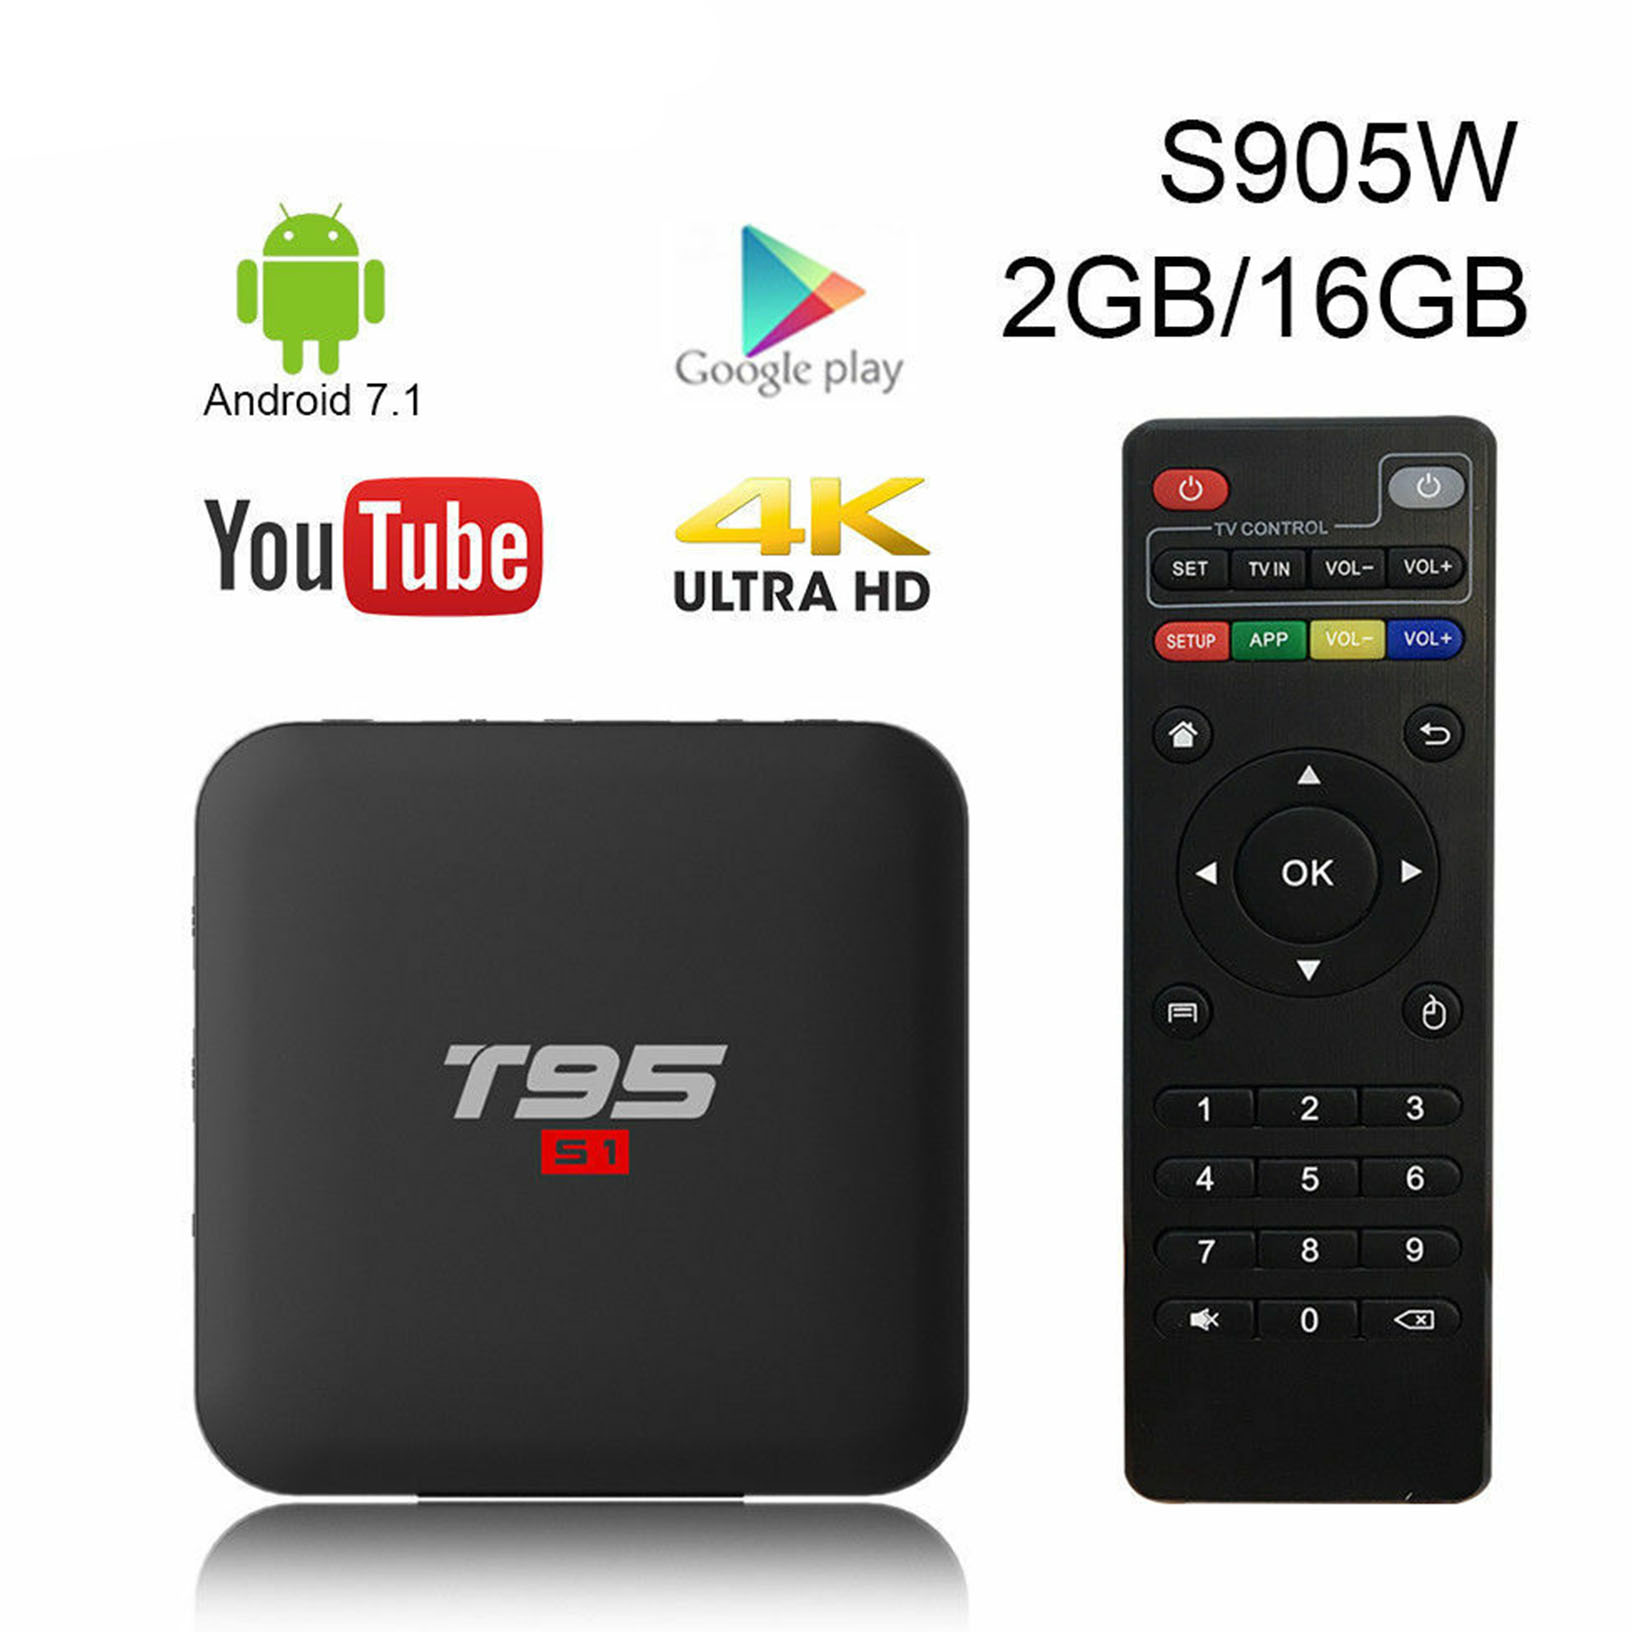 Details about T95 S1 2Gb RAM 16Gb ROM 4K Android 7 1 2 Nougat Smart TV Box  18 3 Wonderbox